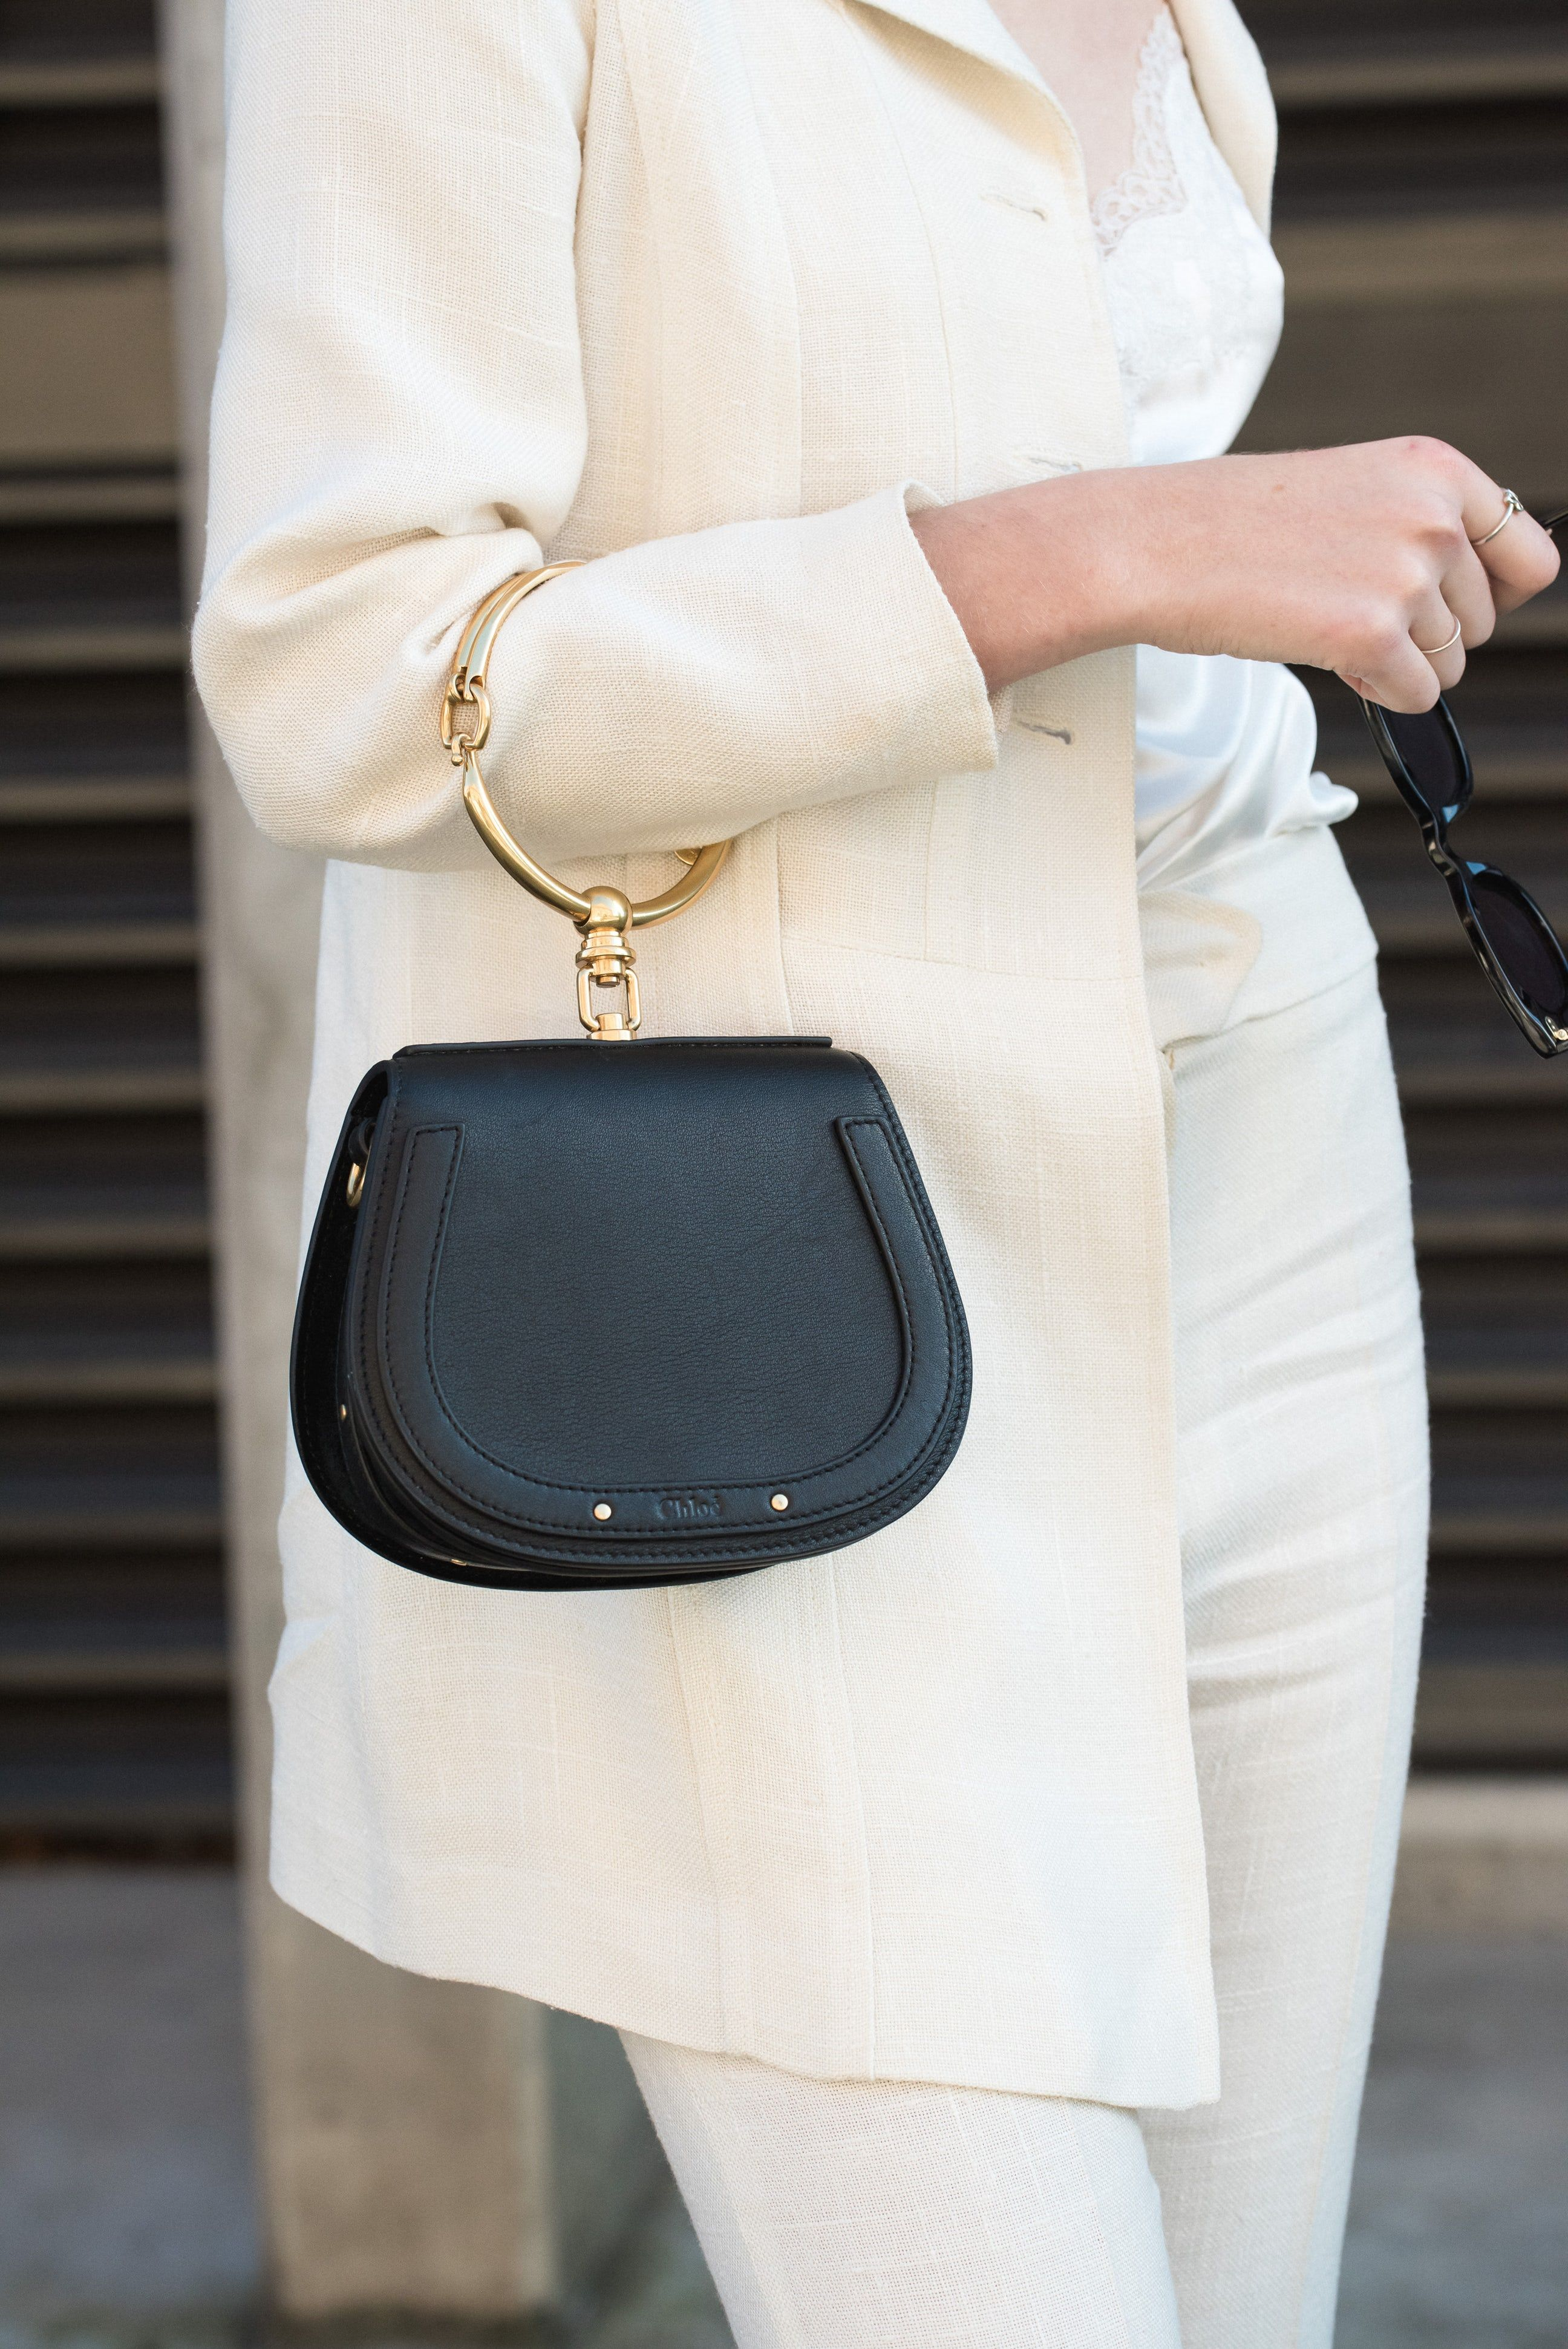 3f85a794ccb1 women's black leather bag | Fashion Lookbook & Style Guide | Purses ...